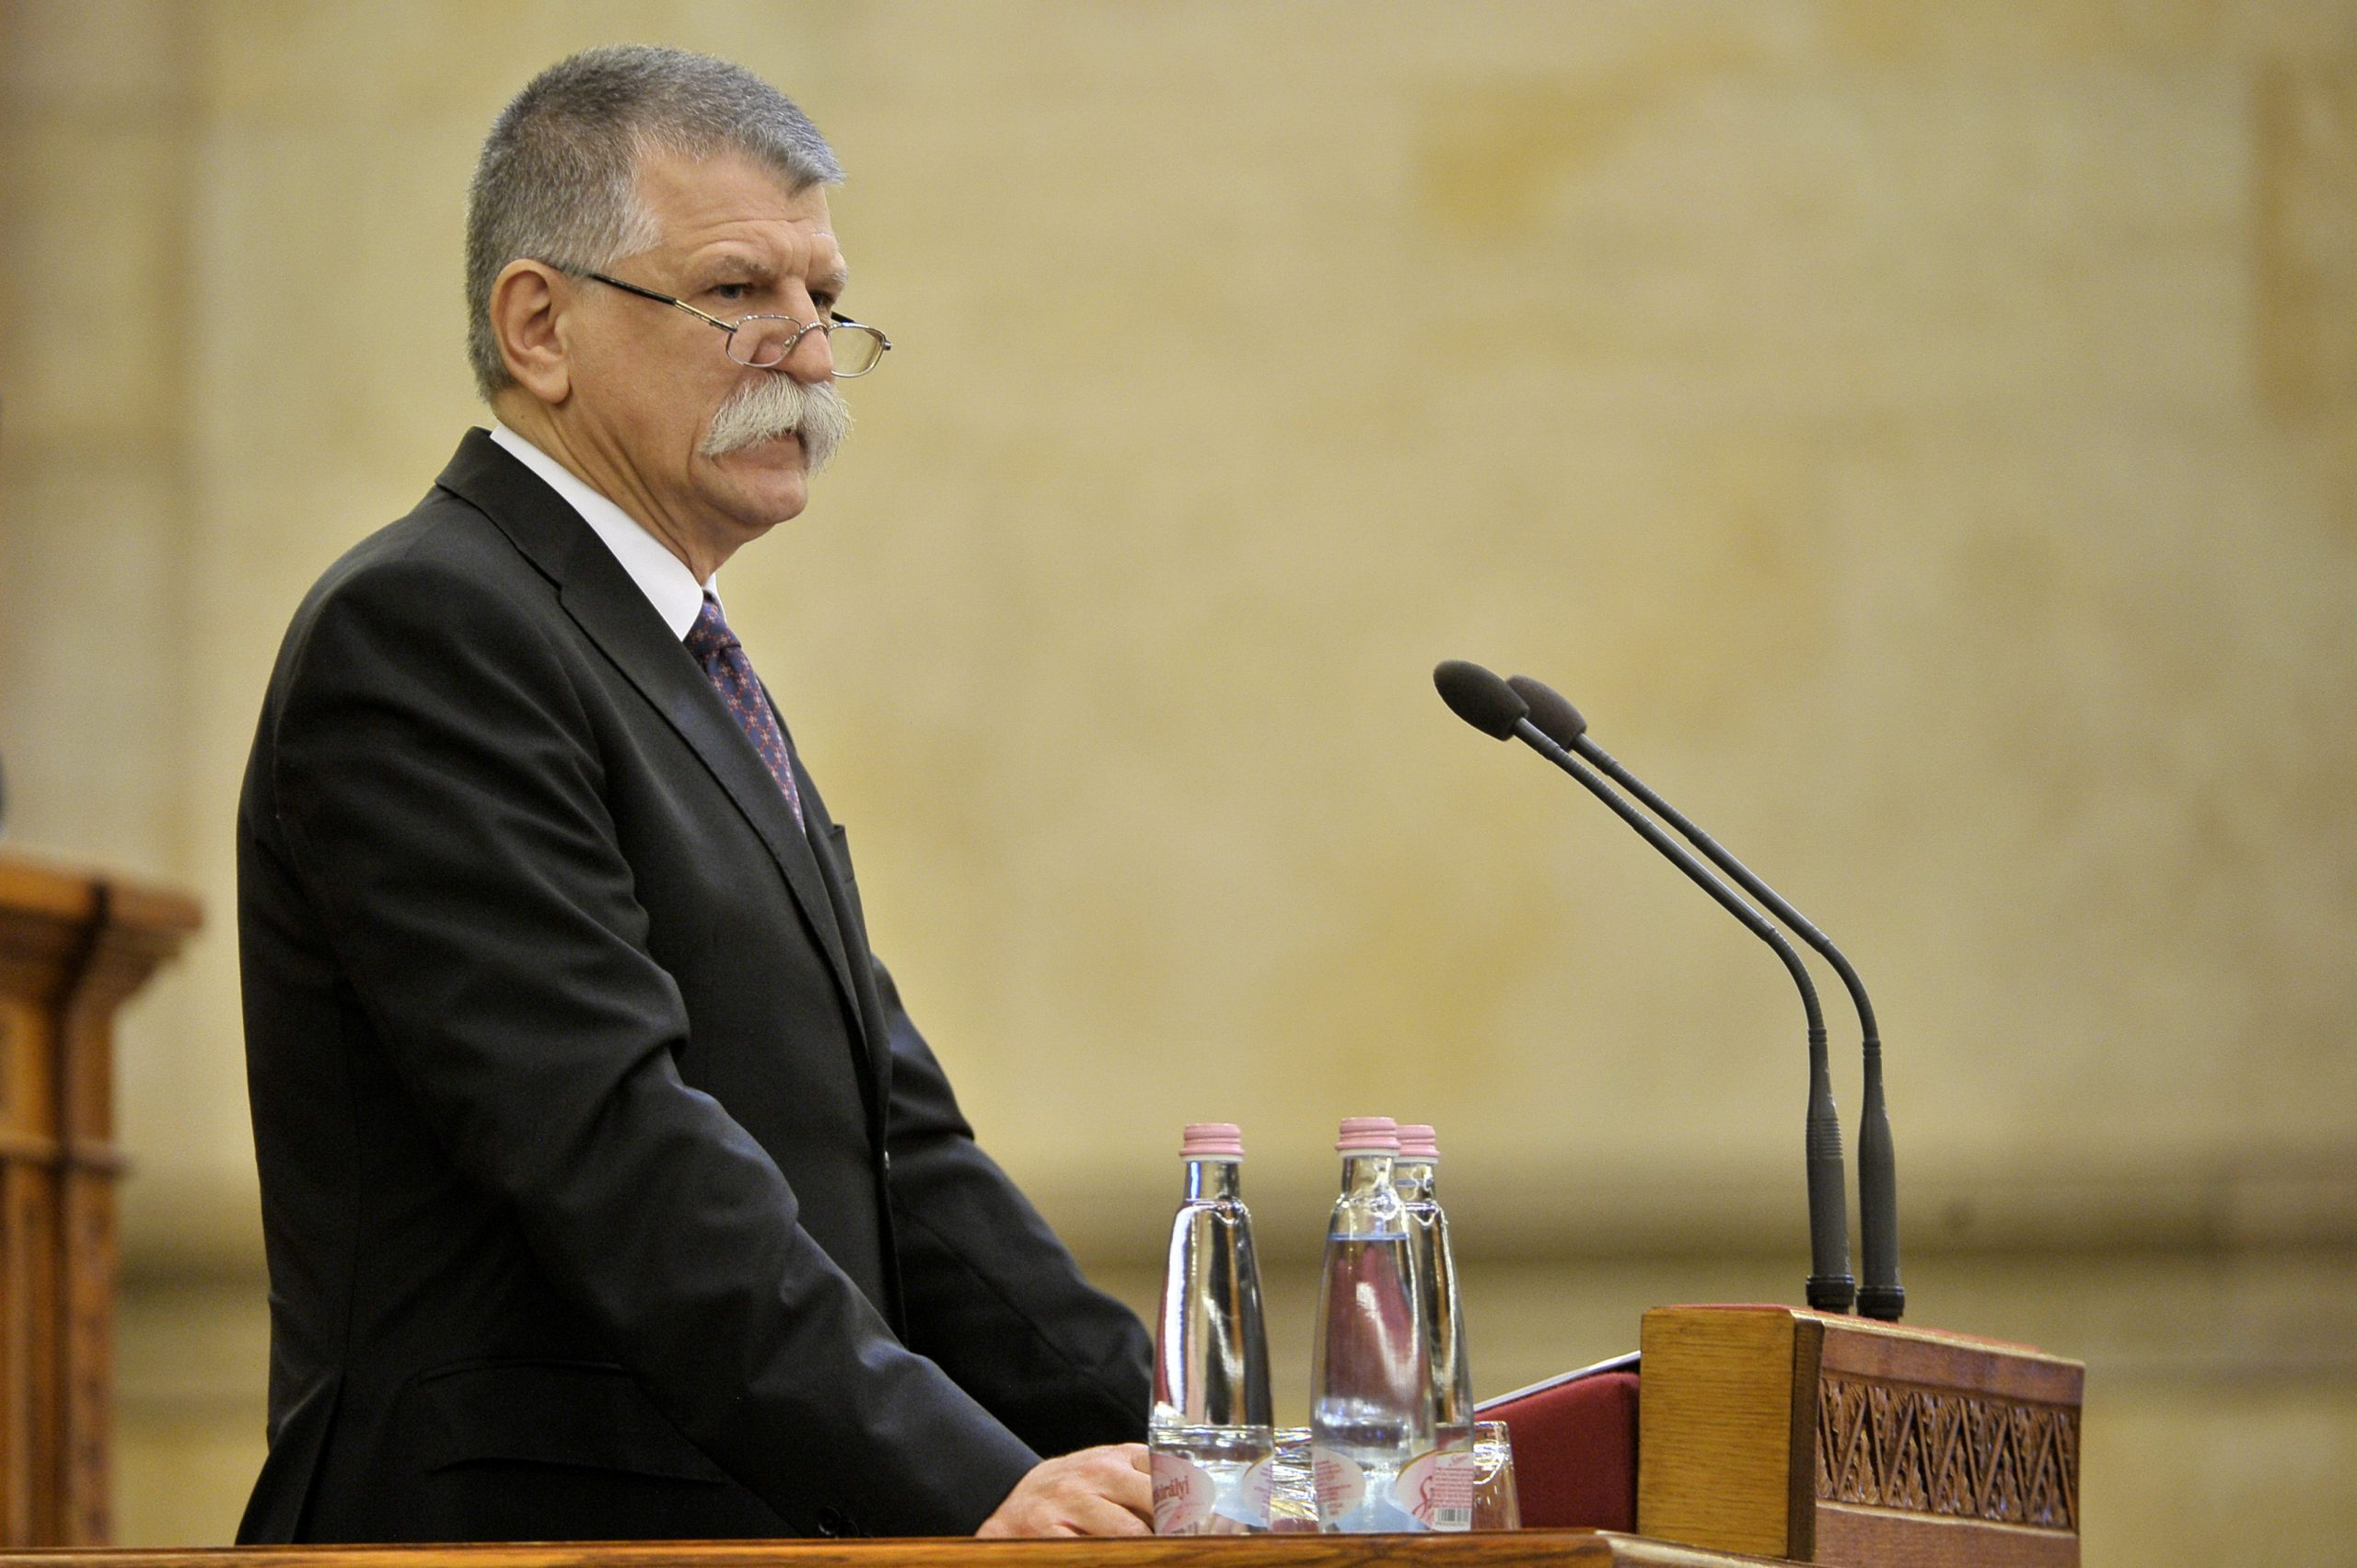 House Speaker: Hungarian State was Established in a Buffer Zone Similar to Today's post's picture